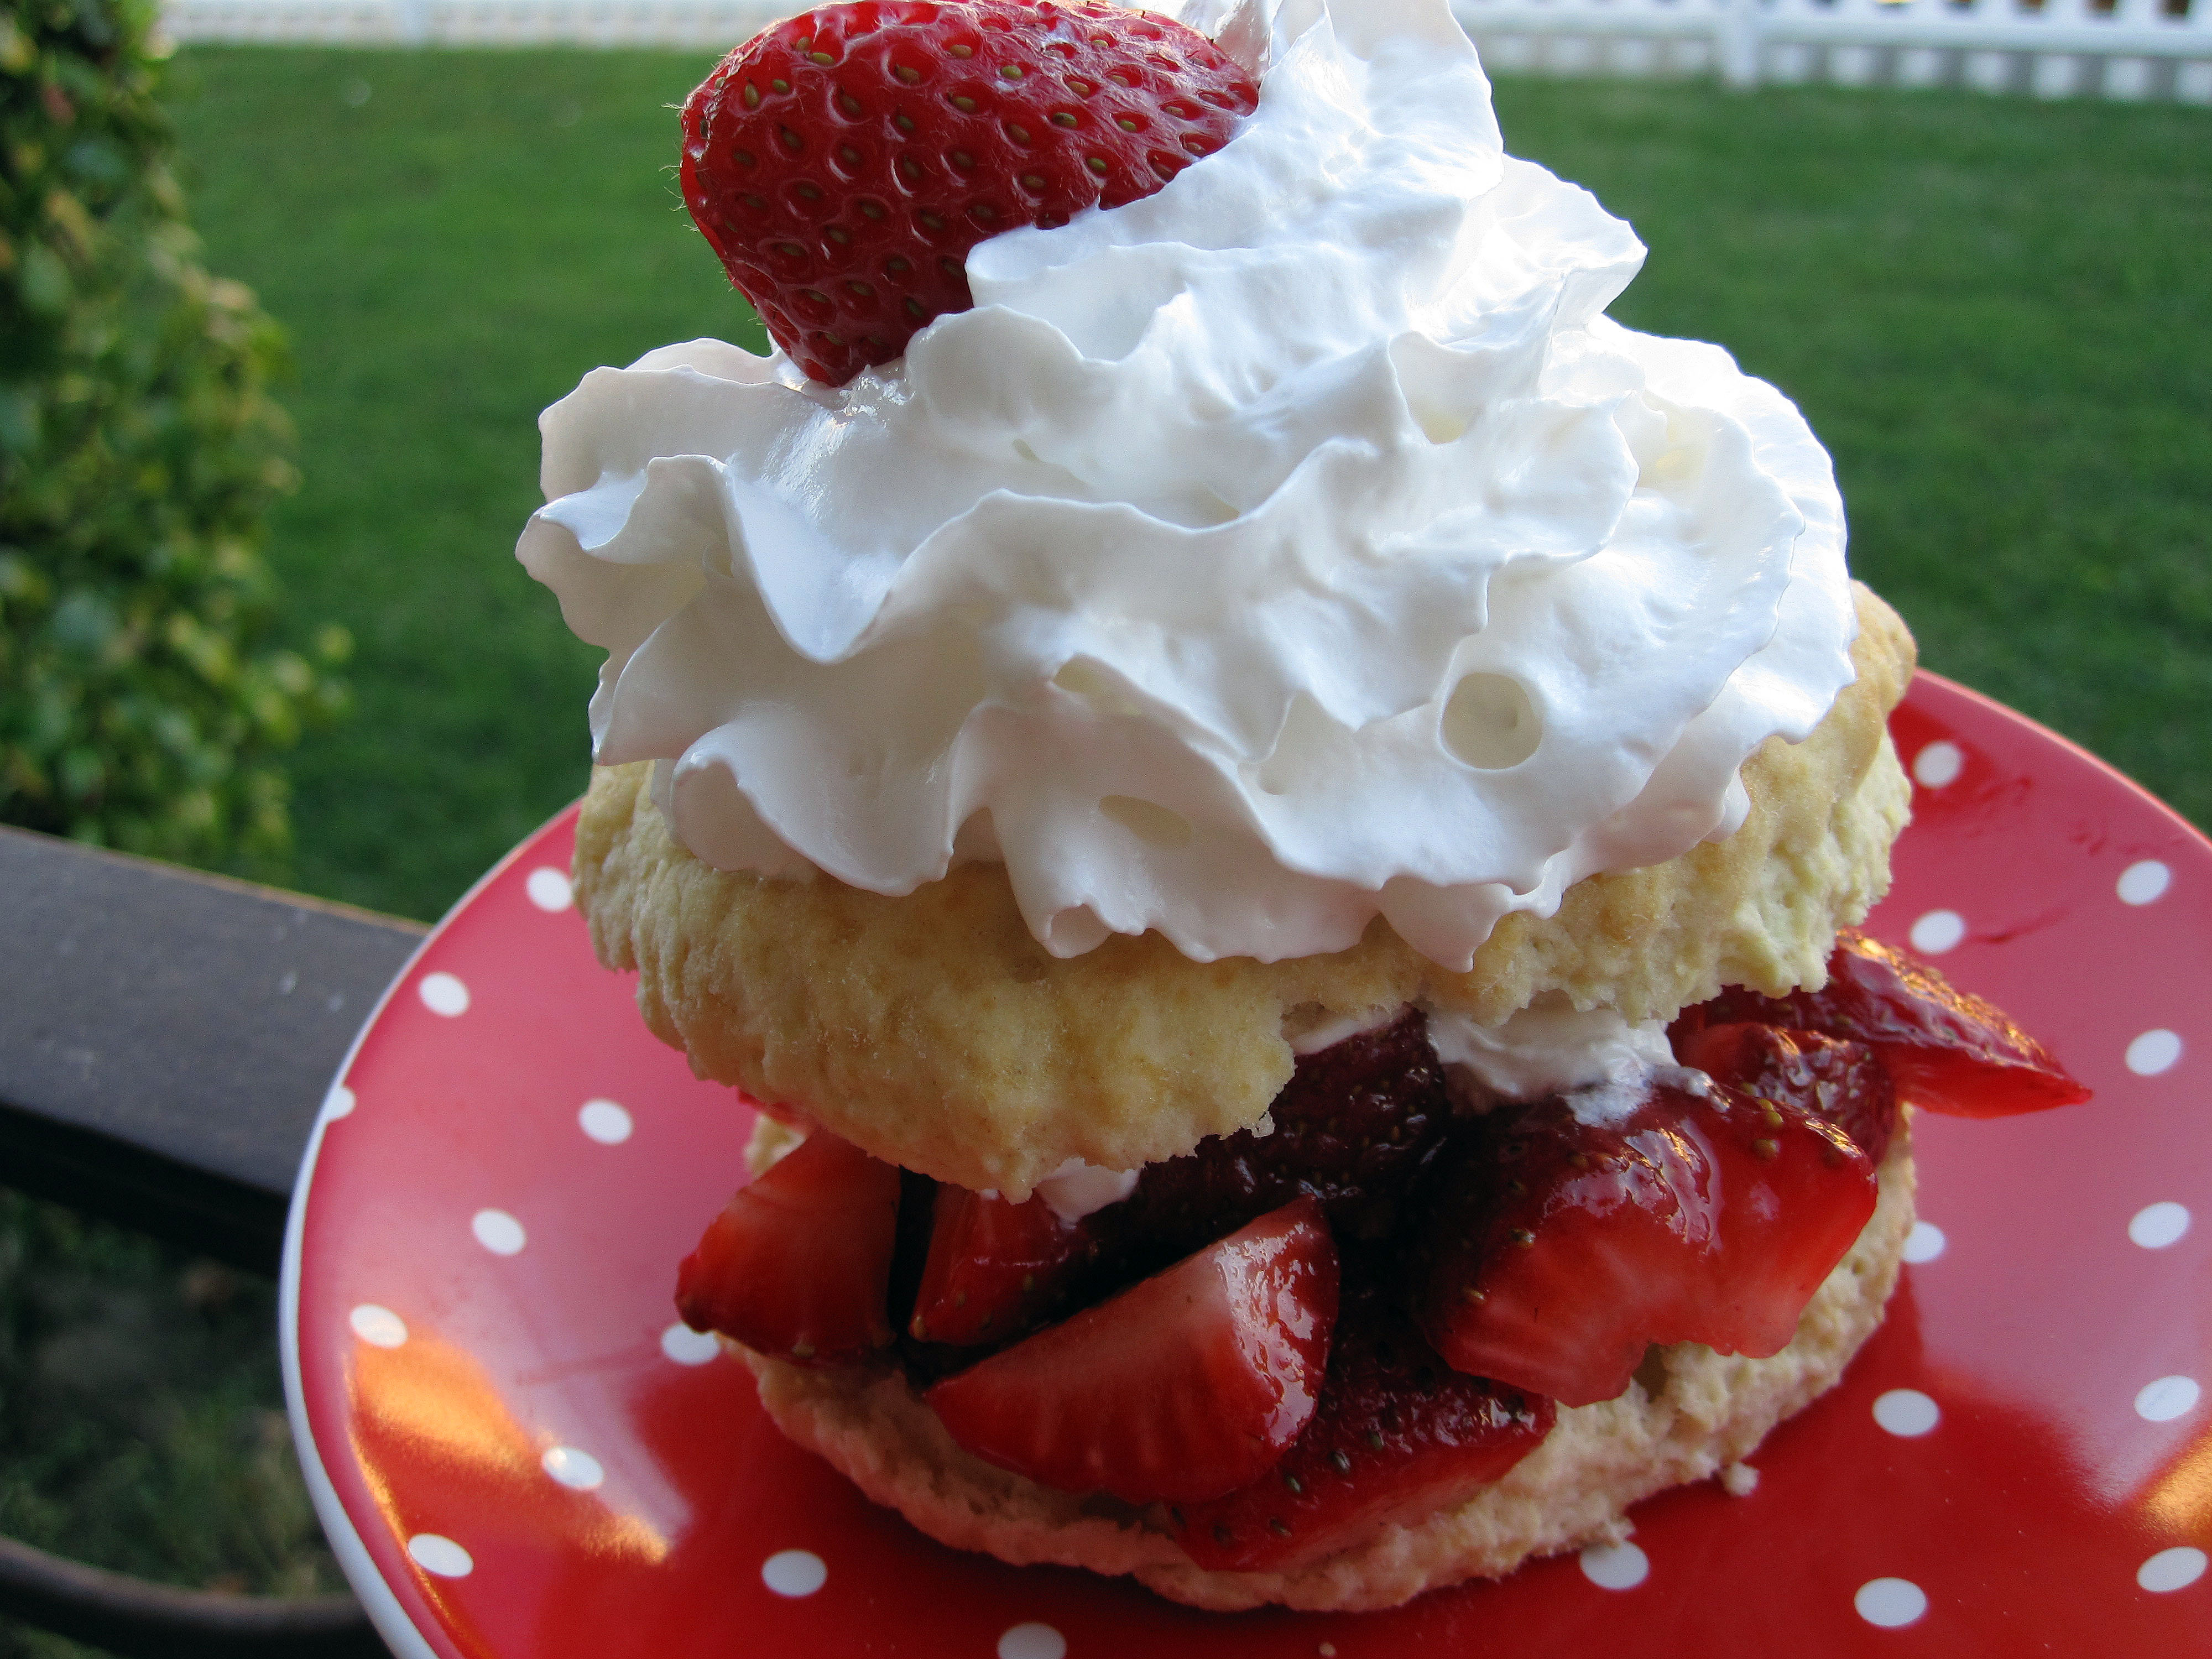 Vegan MoFo Recipe #9: Jemseg Strawberry Shortcake